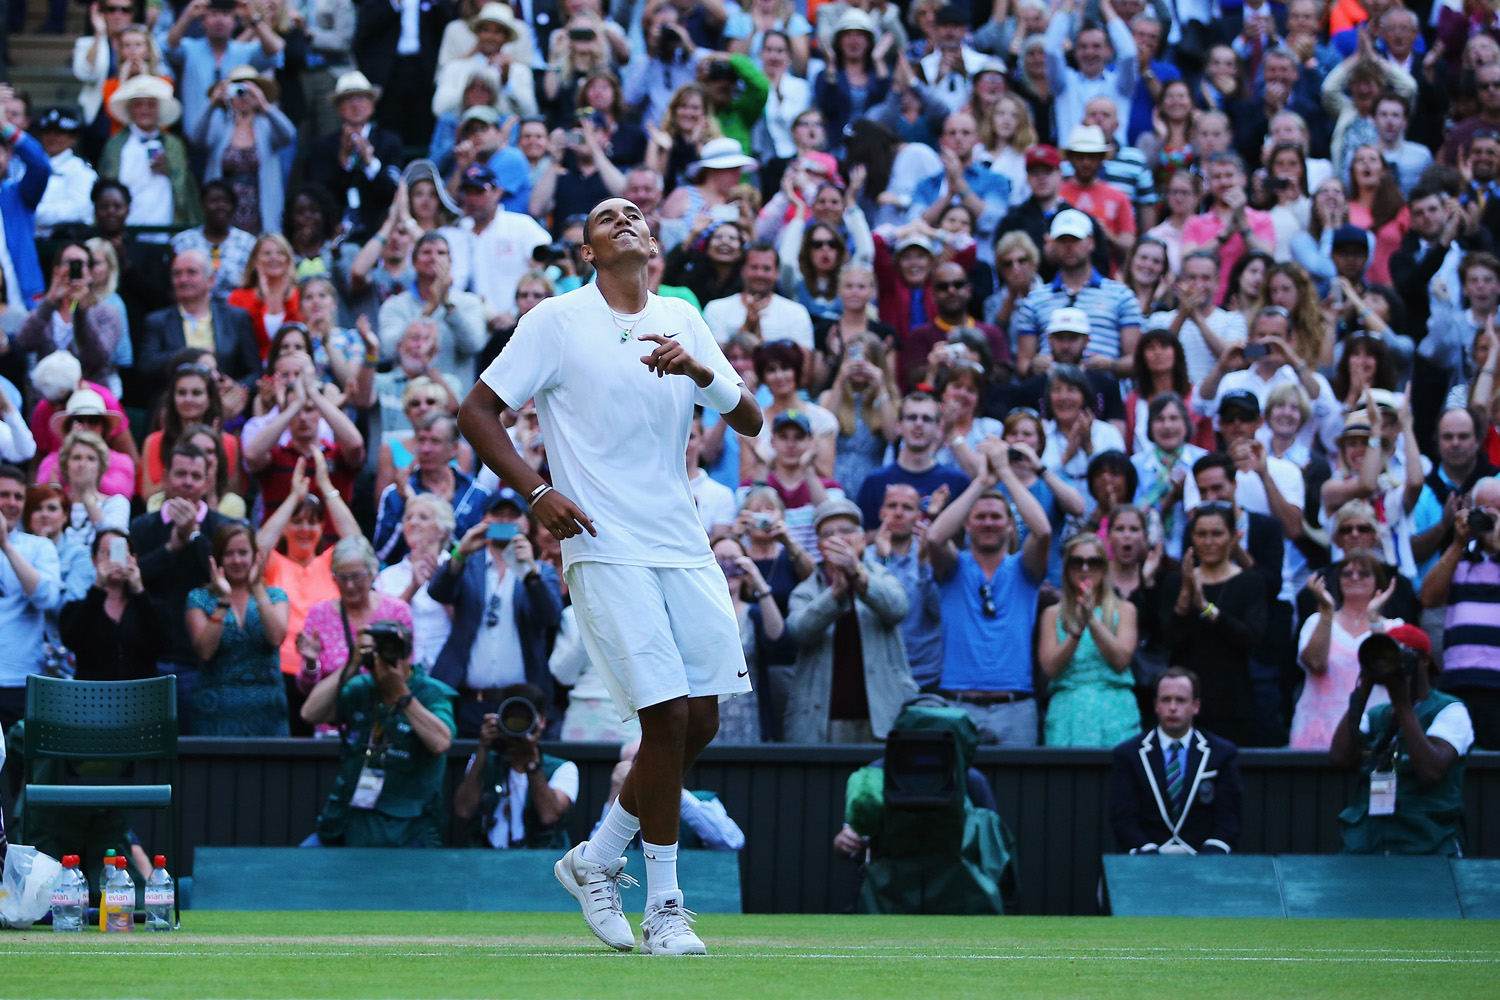 Nick Kyrgios of Australia celebrates match point and winning his Gentlemen's Singles fourth round match against Rafael Nadal of Spain on day eight of the Wimbledon Lawn Tennis Championships at the All England Lawn Tennis and Croquet Club in London on July 1, 2014.